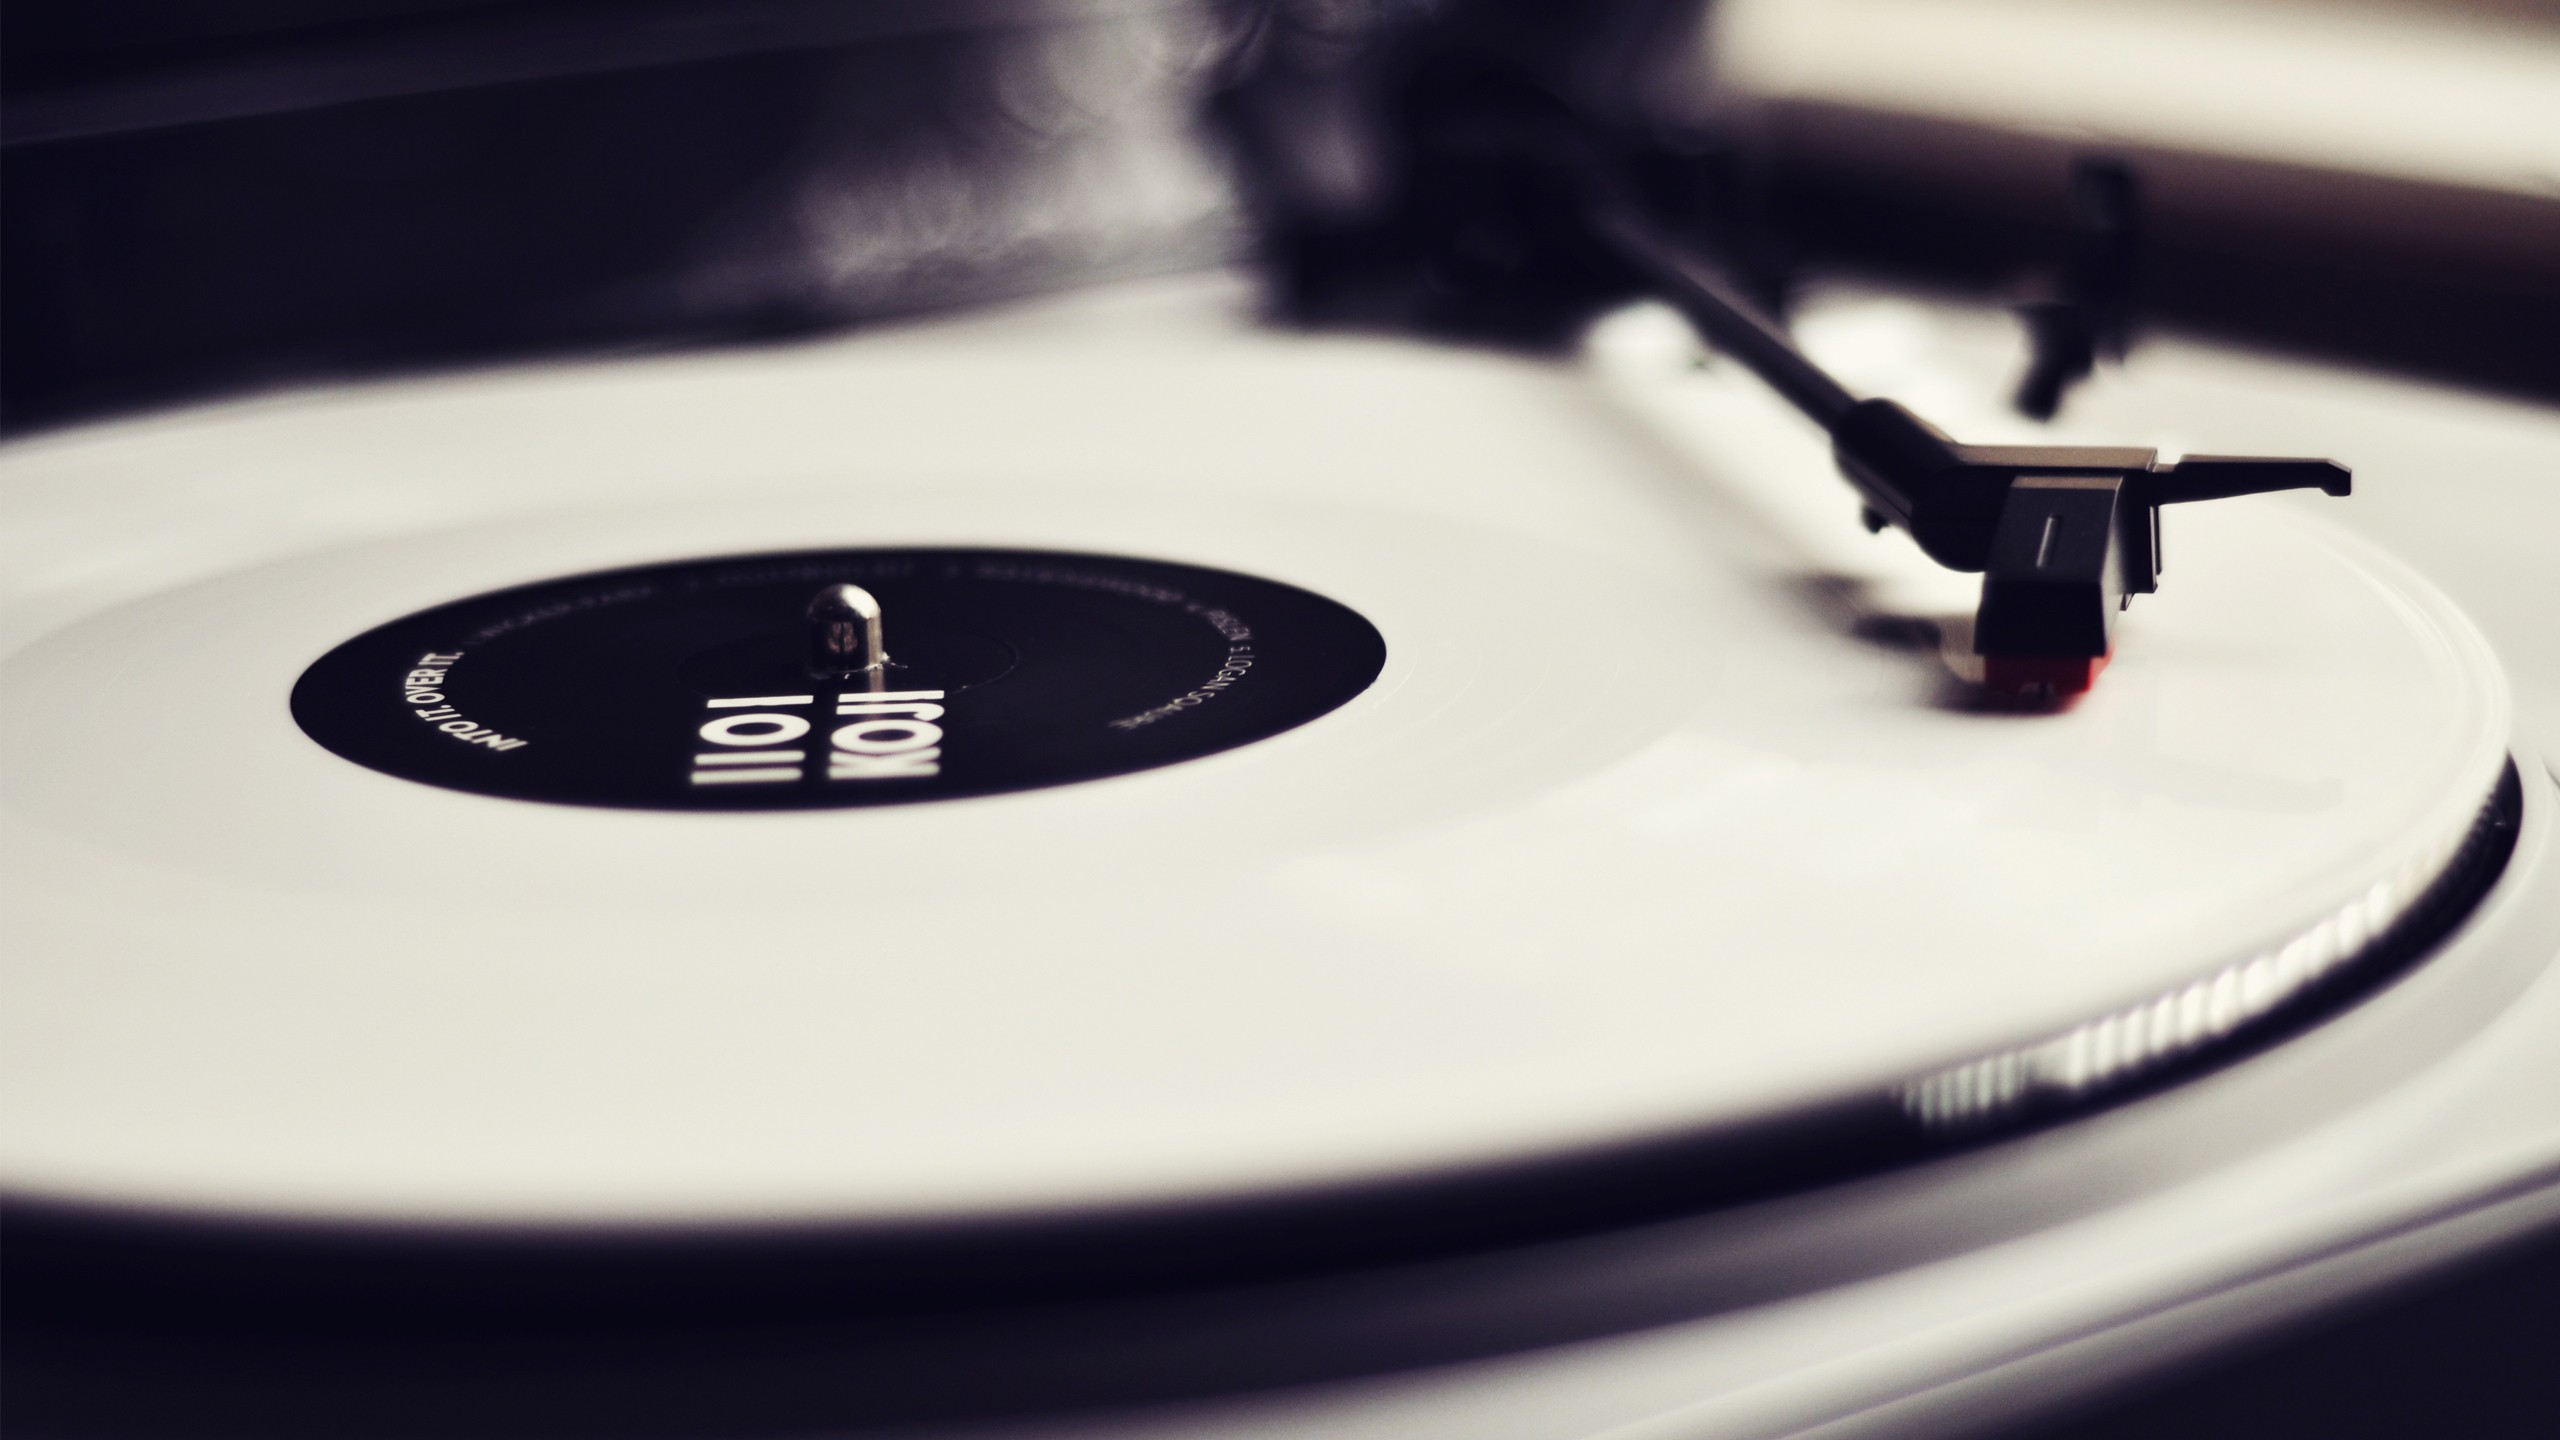 Record Music   Wallpaper High Definition High Quality Widescreen 2560x1440